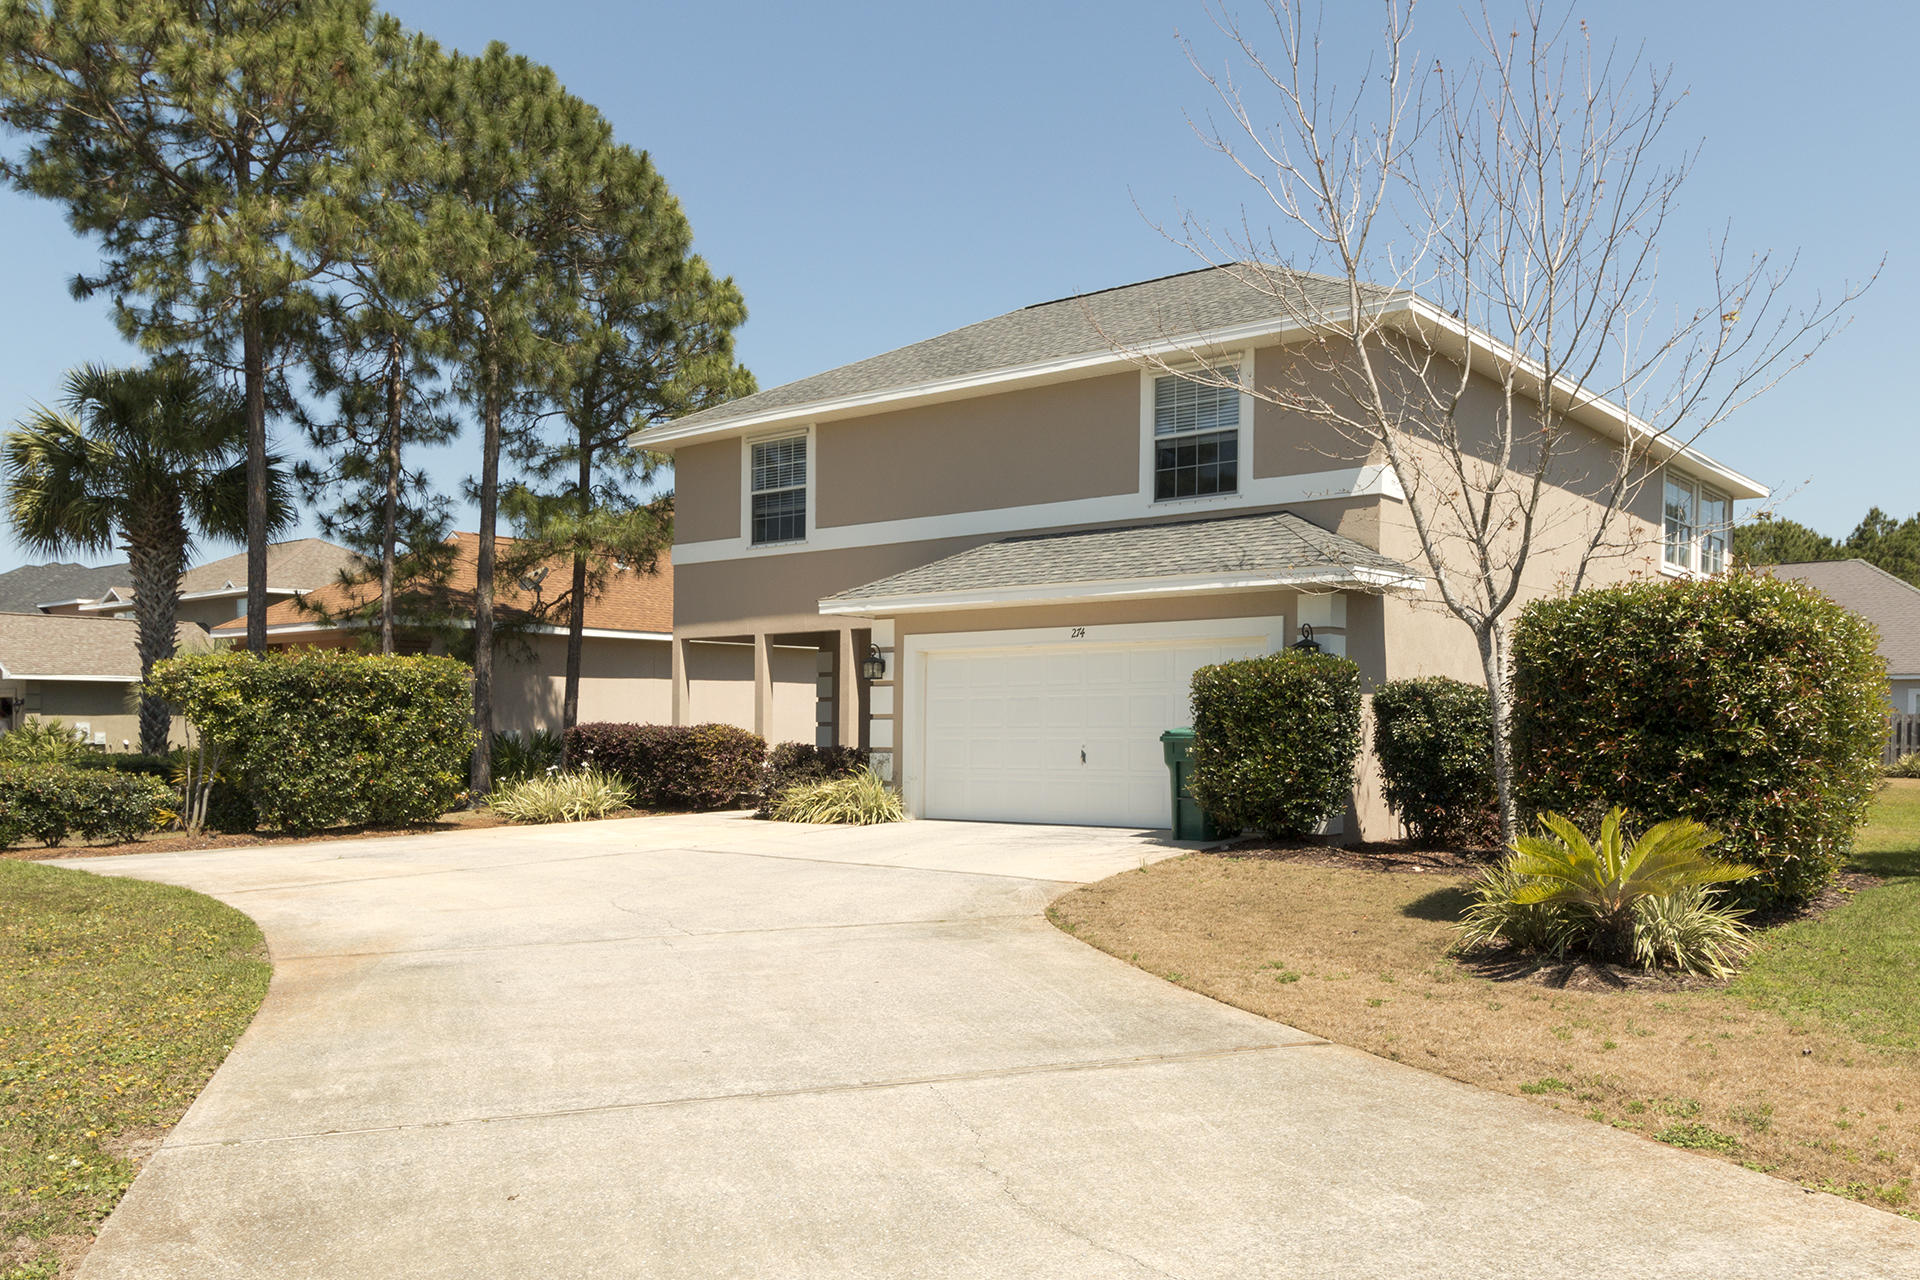 Destin Real Estate Listing, featured MLS property E773944